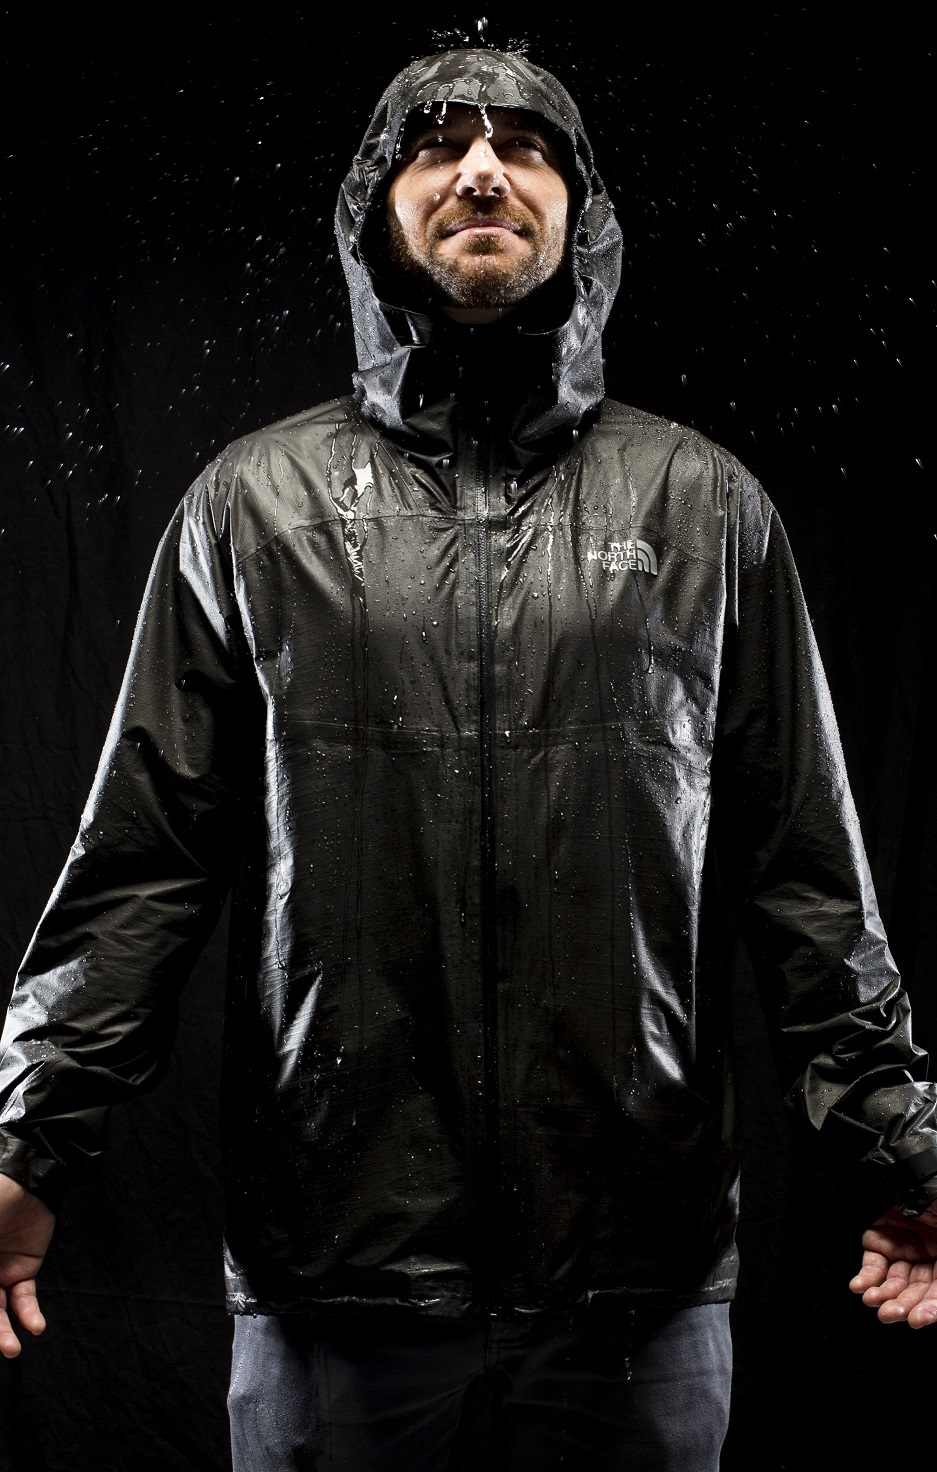 La nuova giacca The North Face traspirante e resistente all'acqua